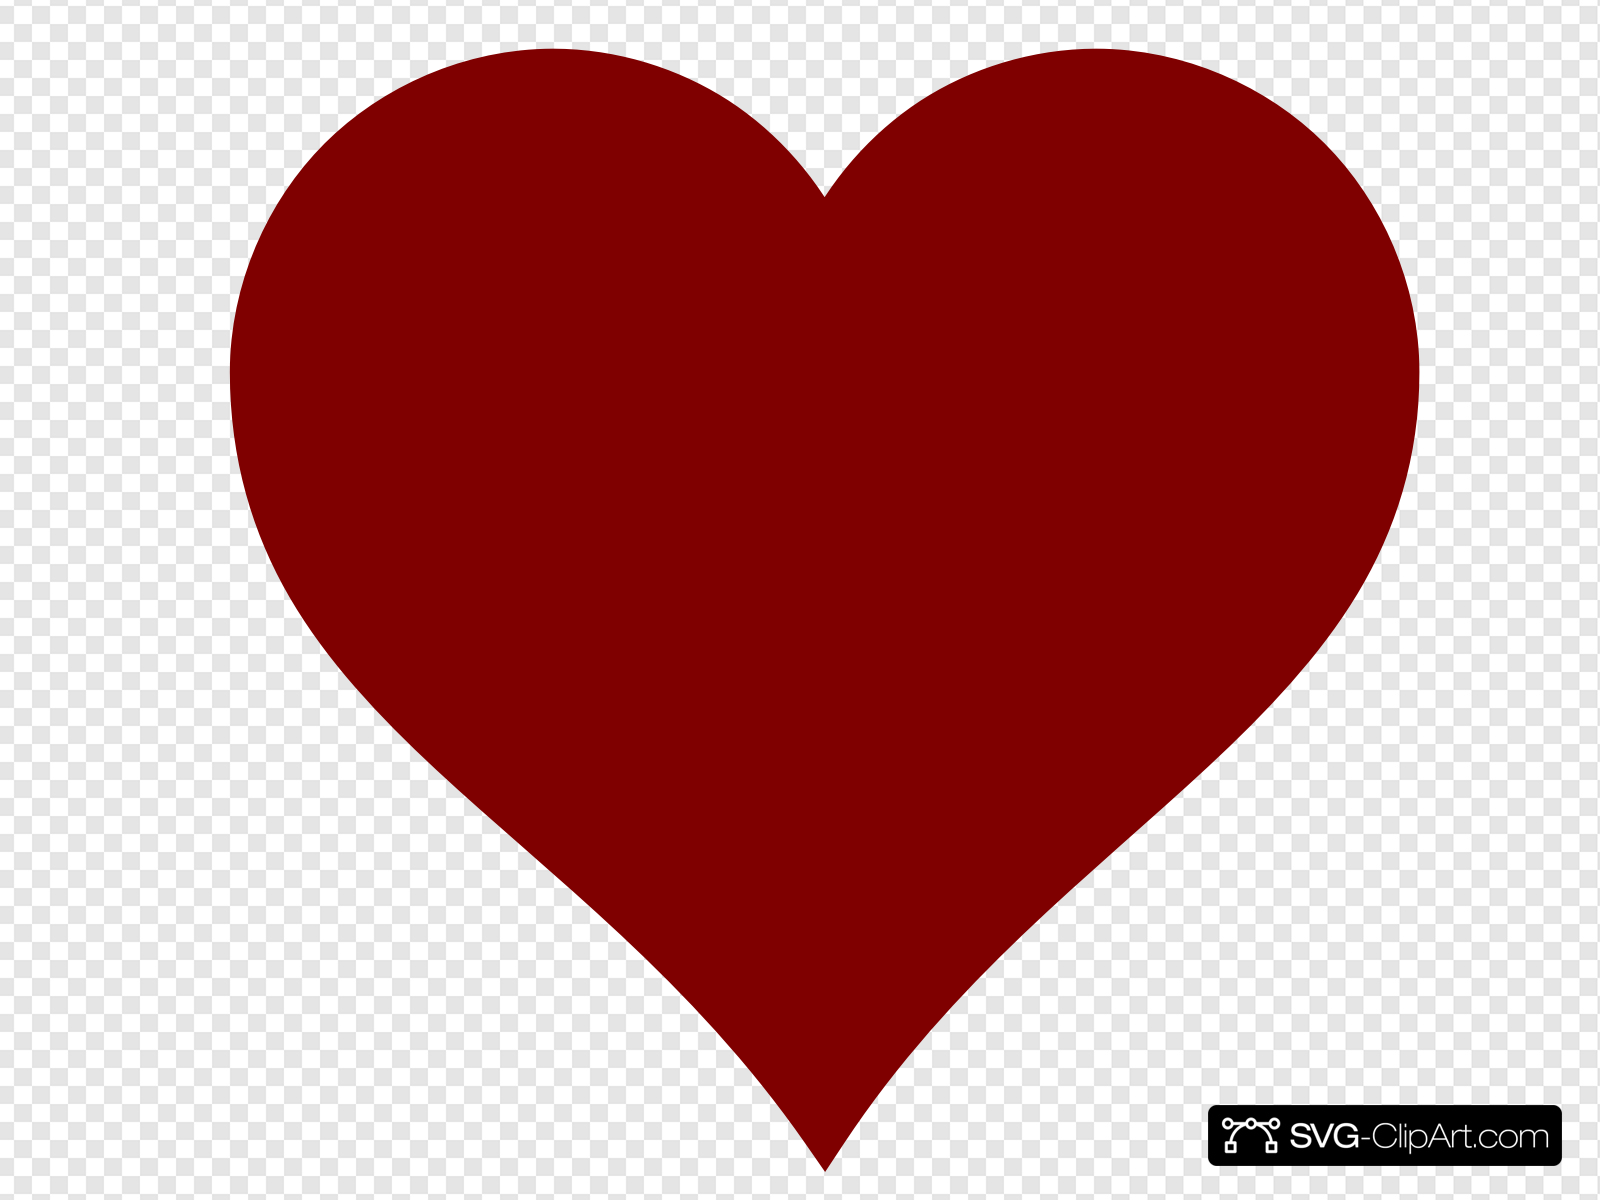 Small Red Heart With Transparent Background Clip art, Icon.